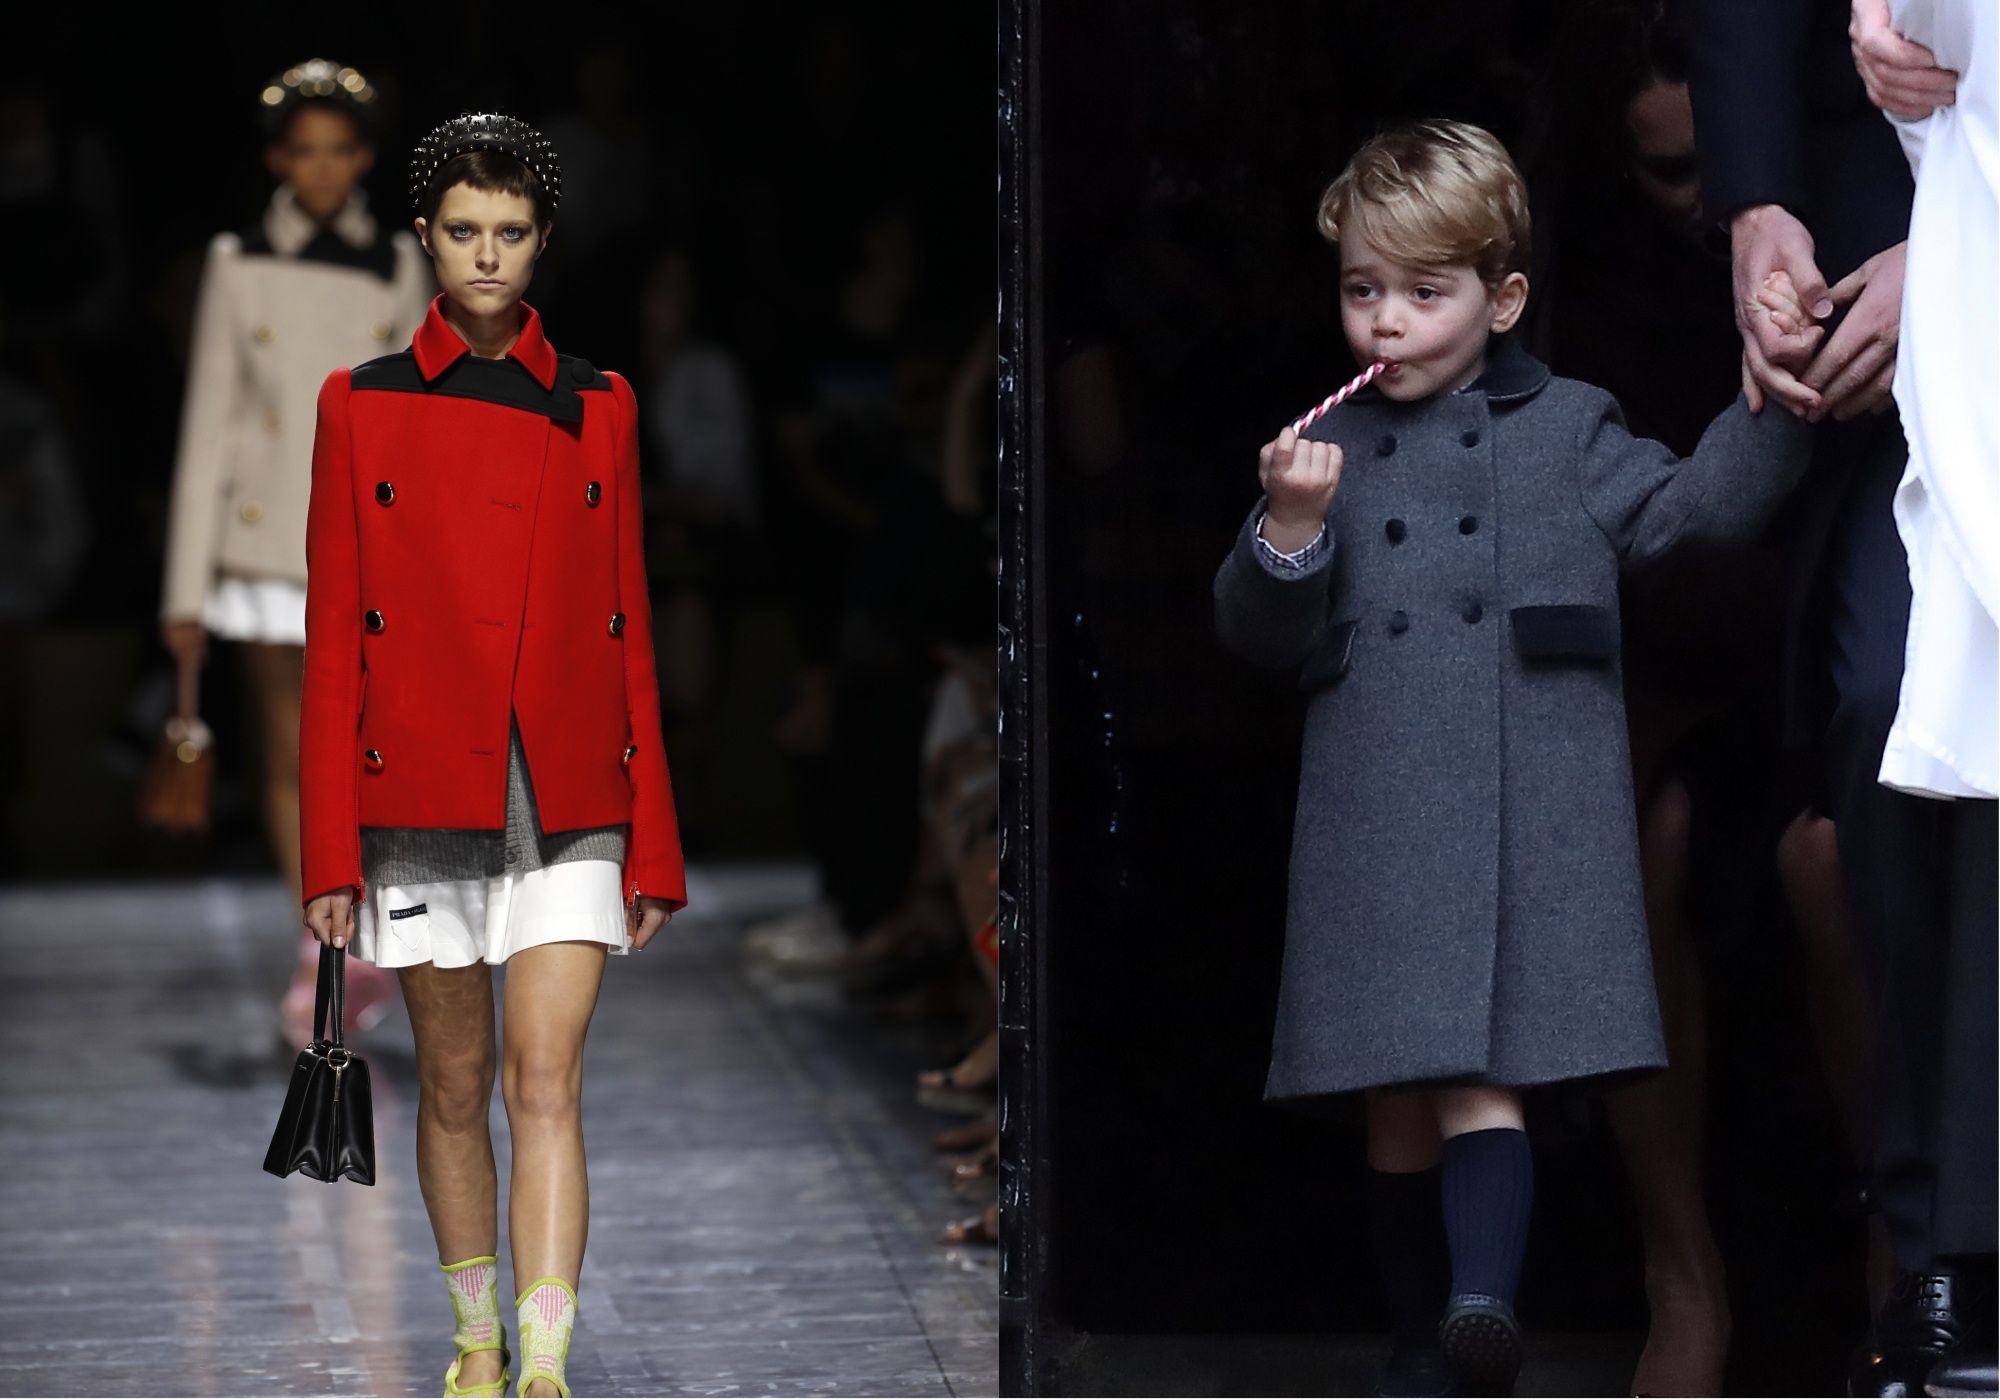 Prada model and George